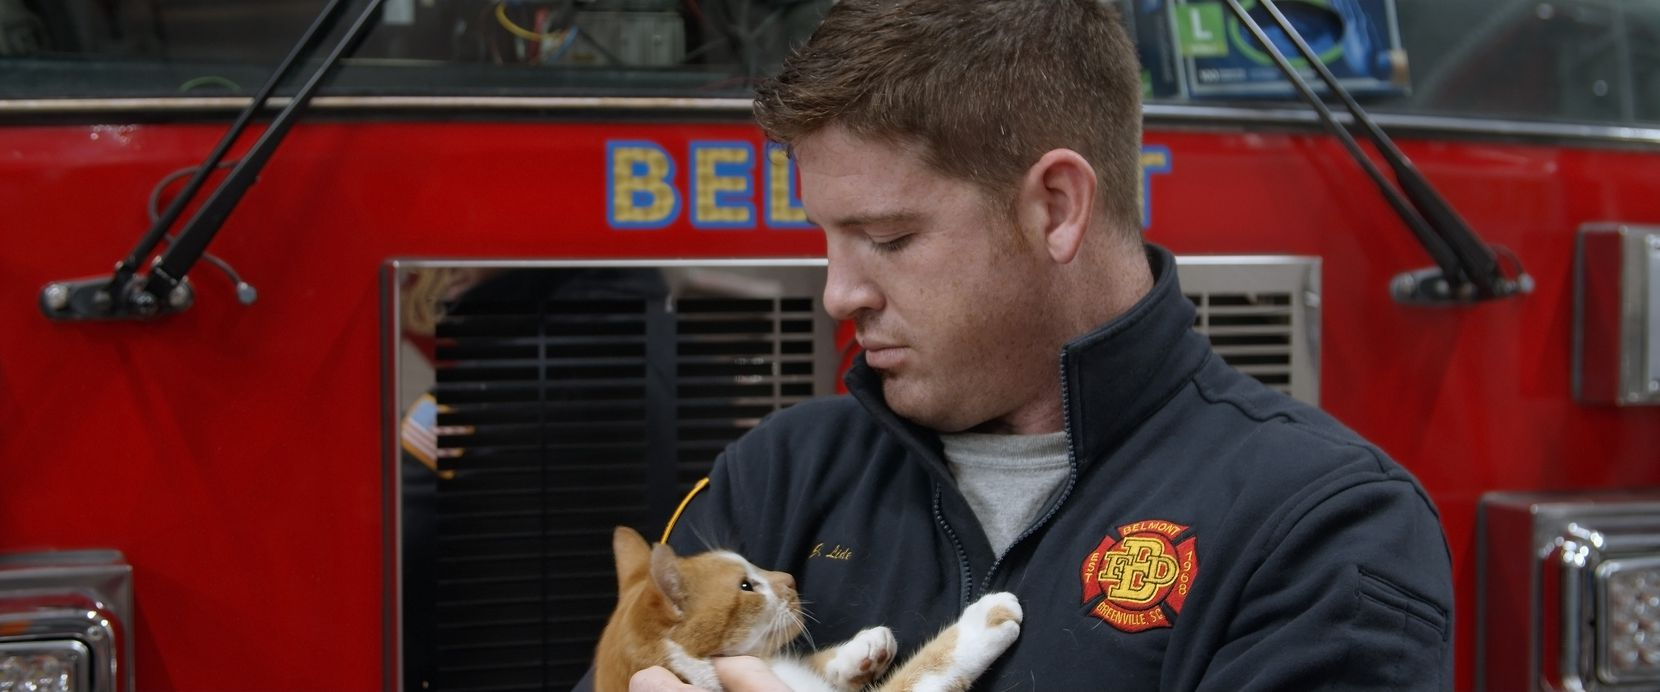 """A fire engineer holds Flame, who is taken care of by the Belmont Fire Department in Greenville, S.C., in """"Cat Daddies."""""""